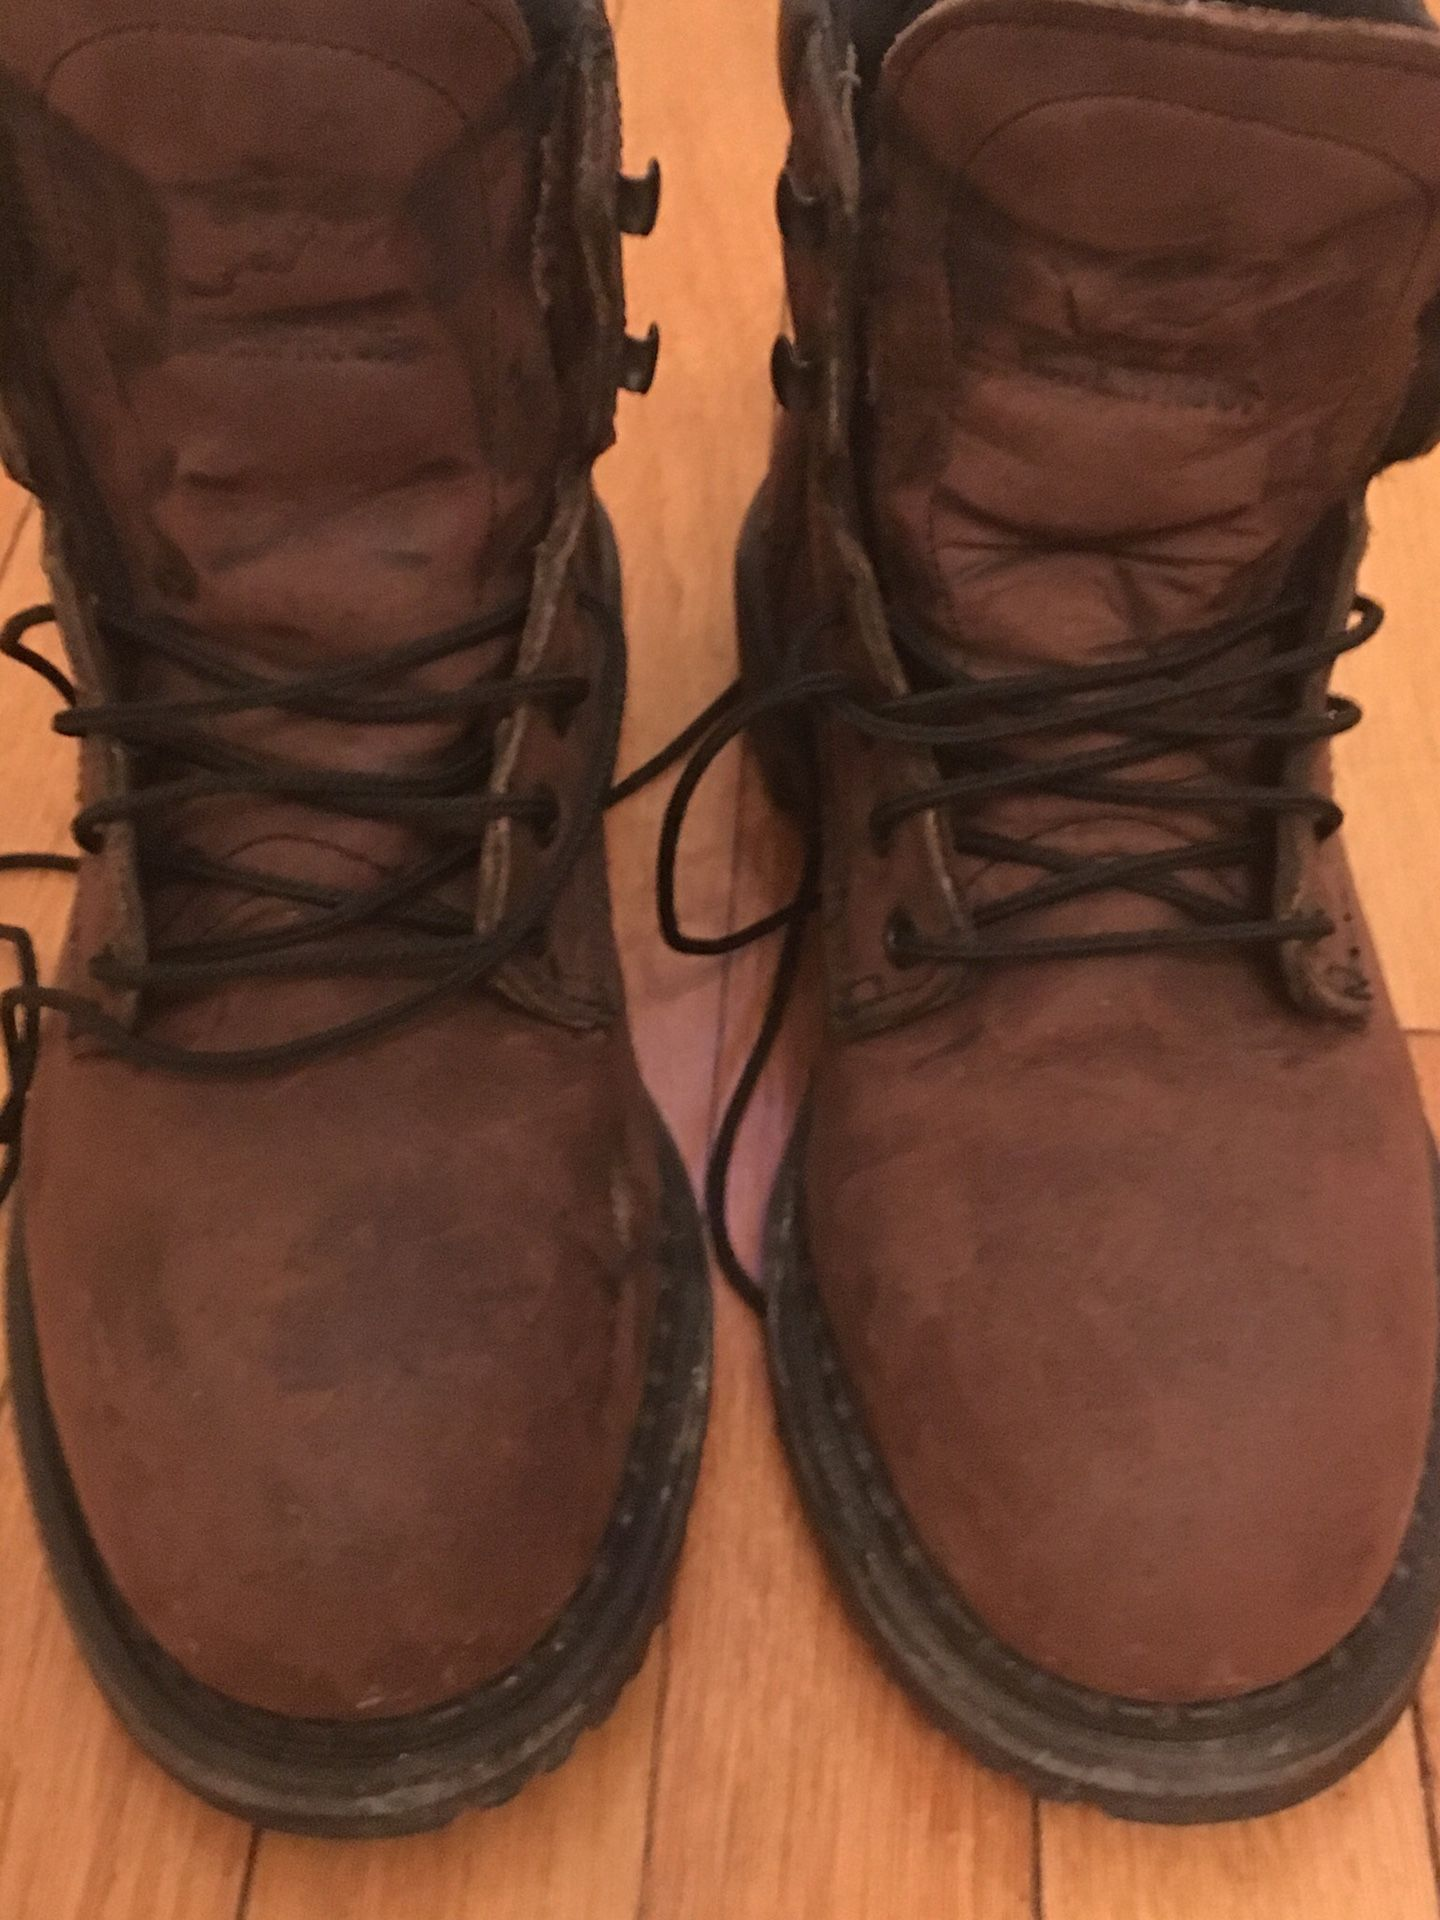 Redwing insulated EH work boots with steel toe